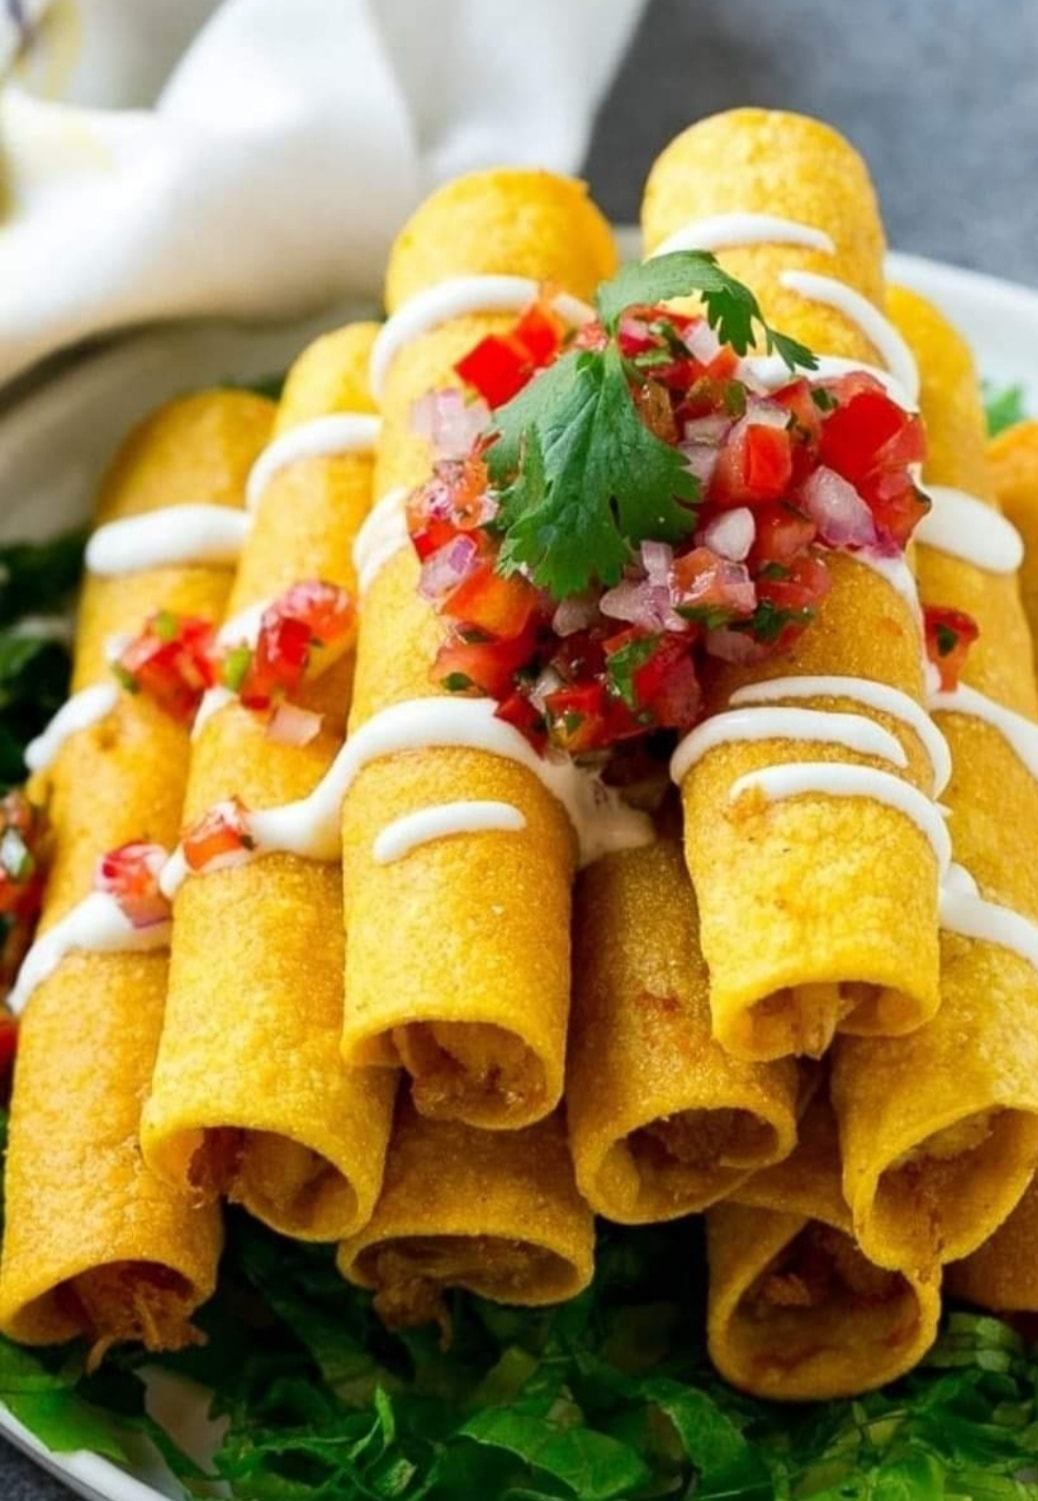 A tasty stack of chimichangas.